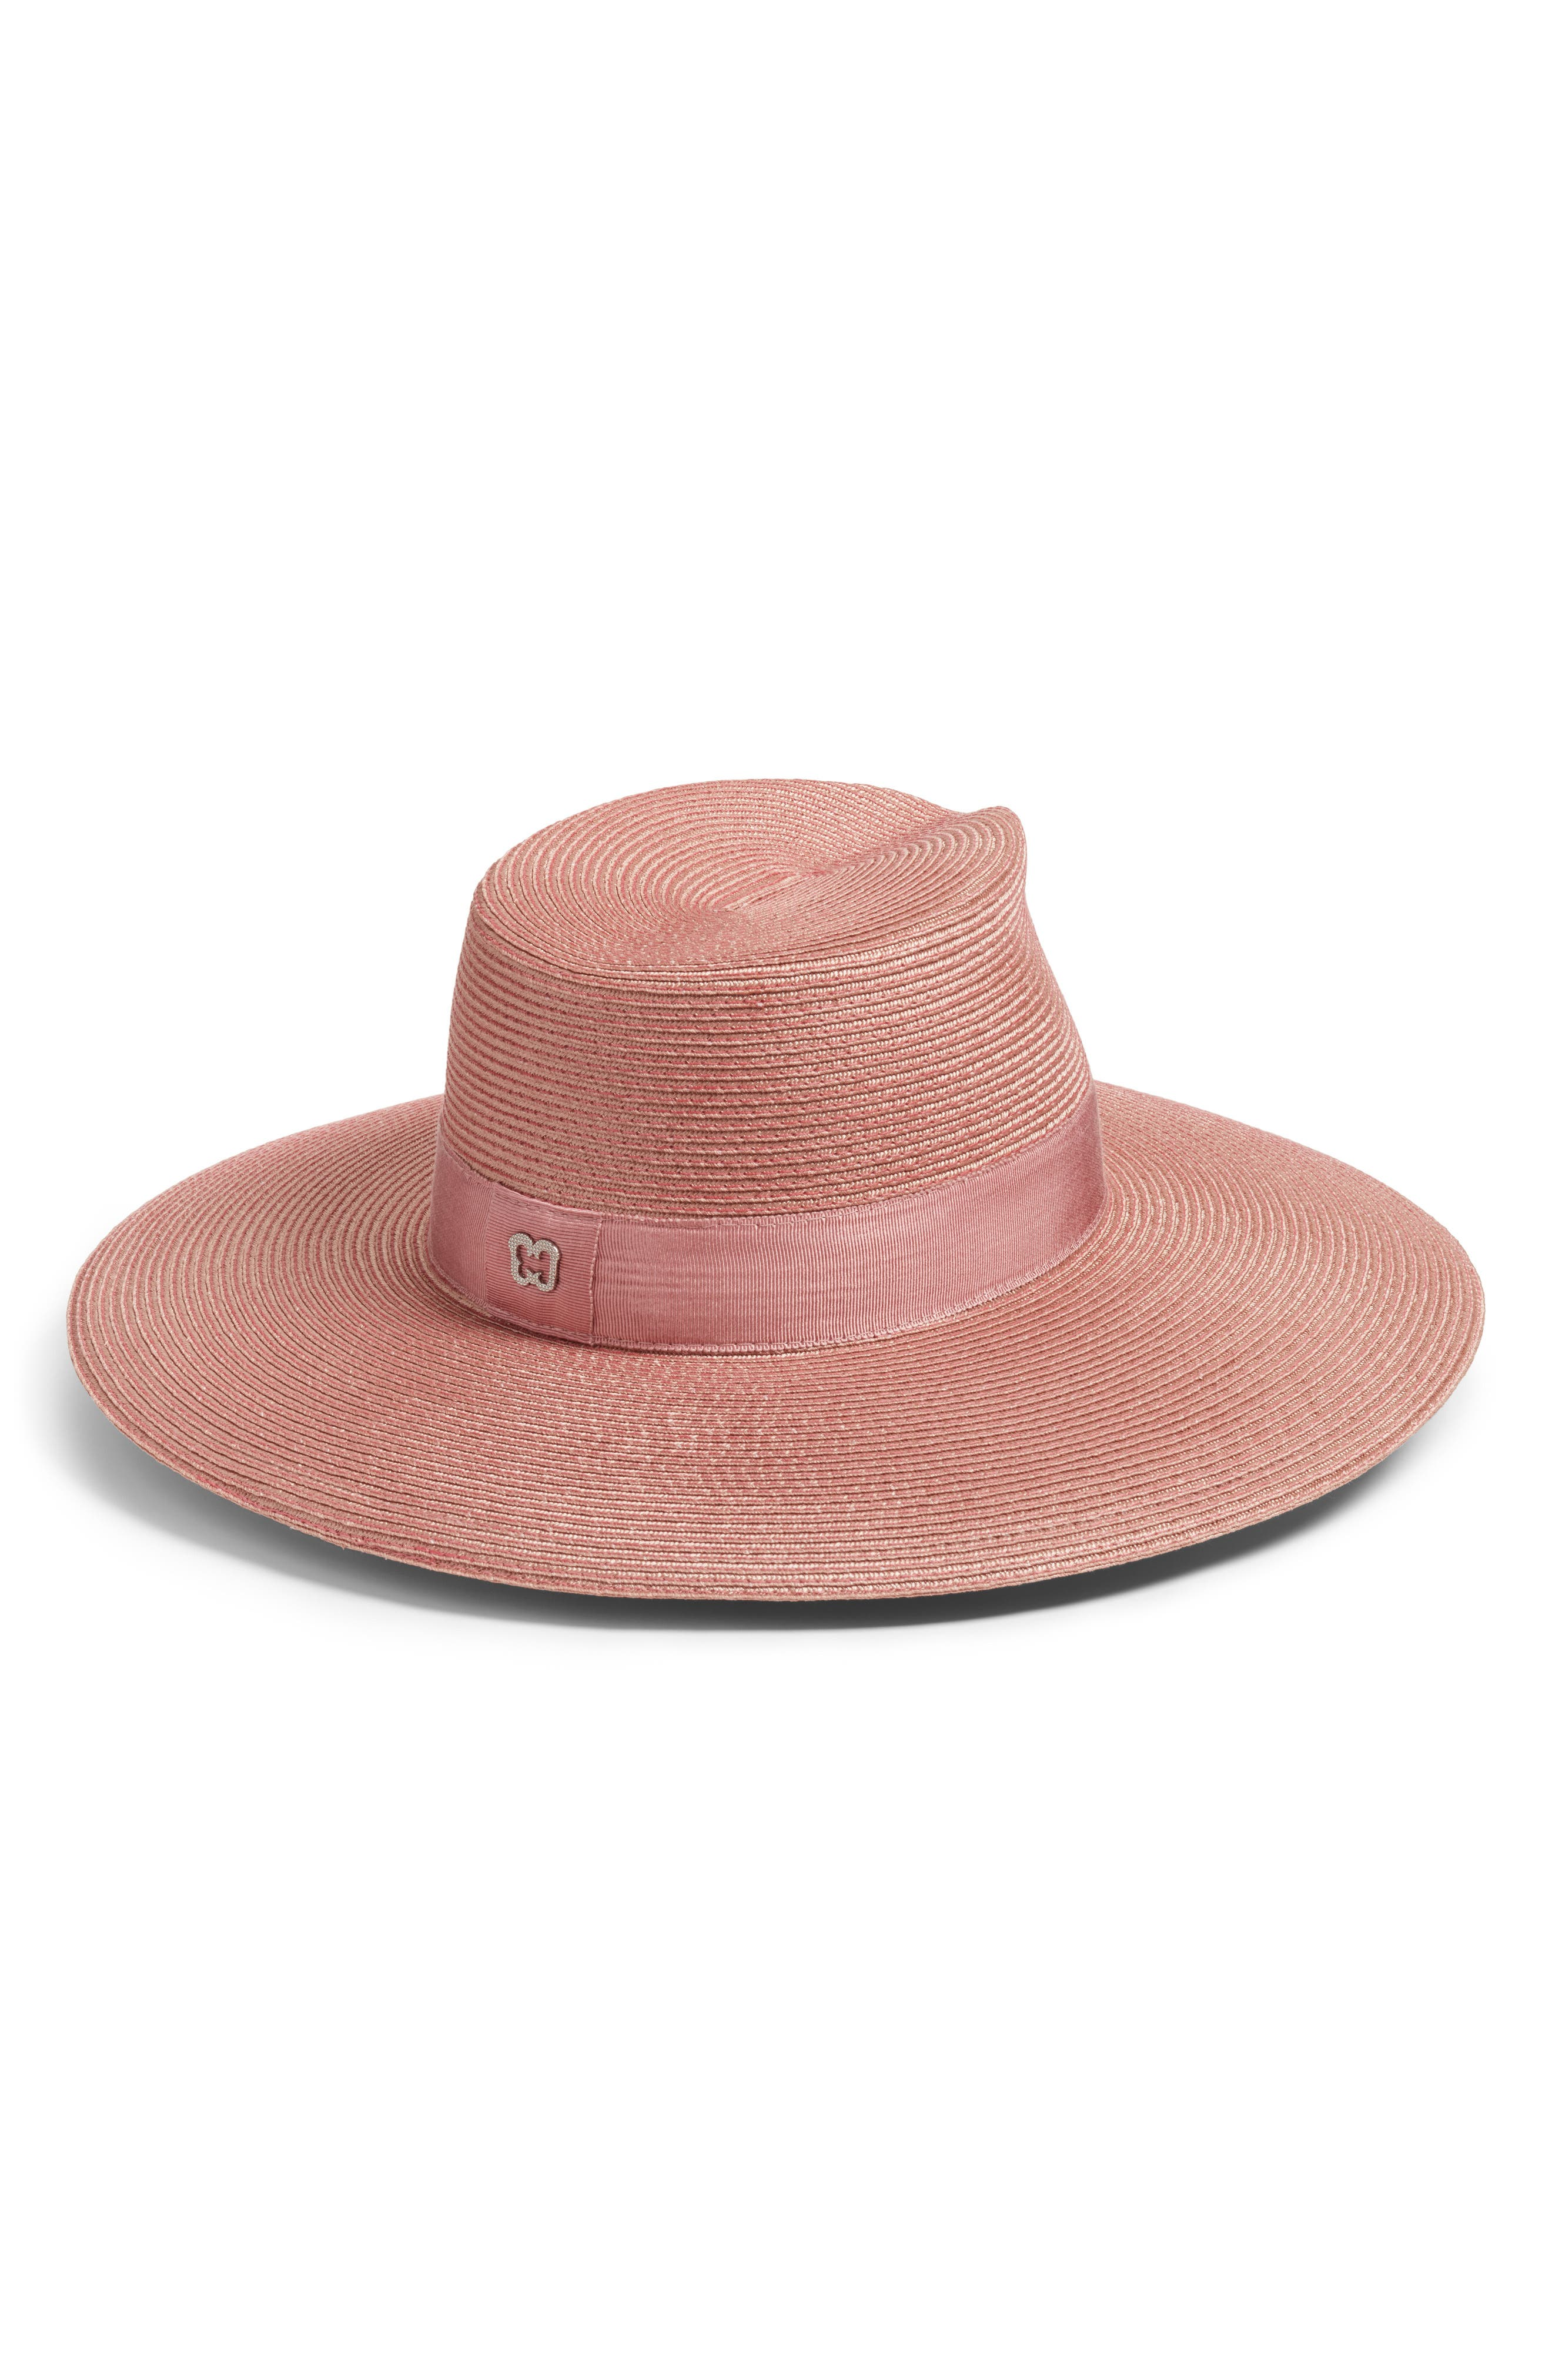 c0bc4ed437df6d Hats for Women | Nordstrom